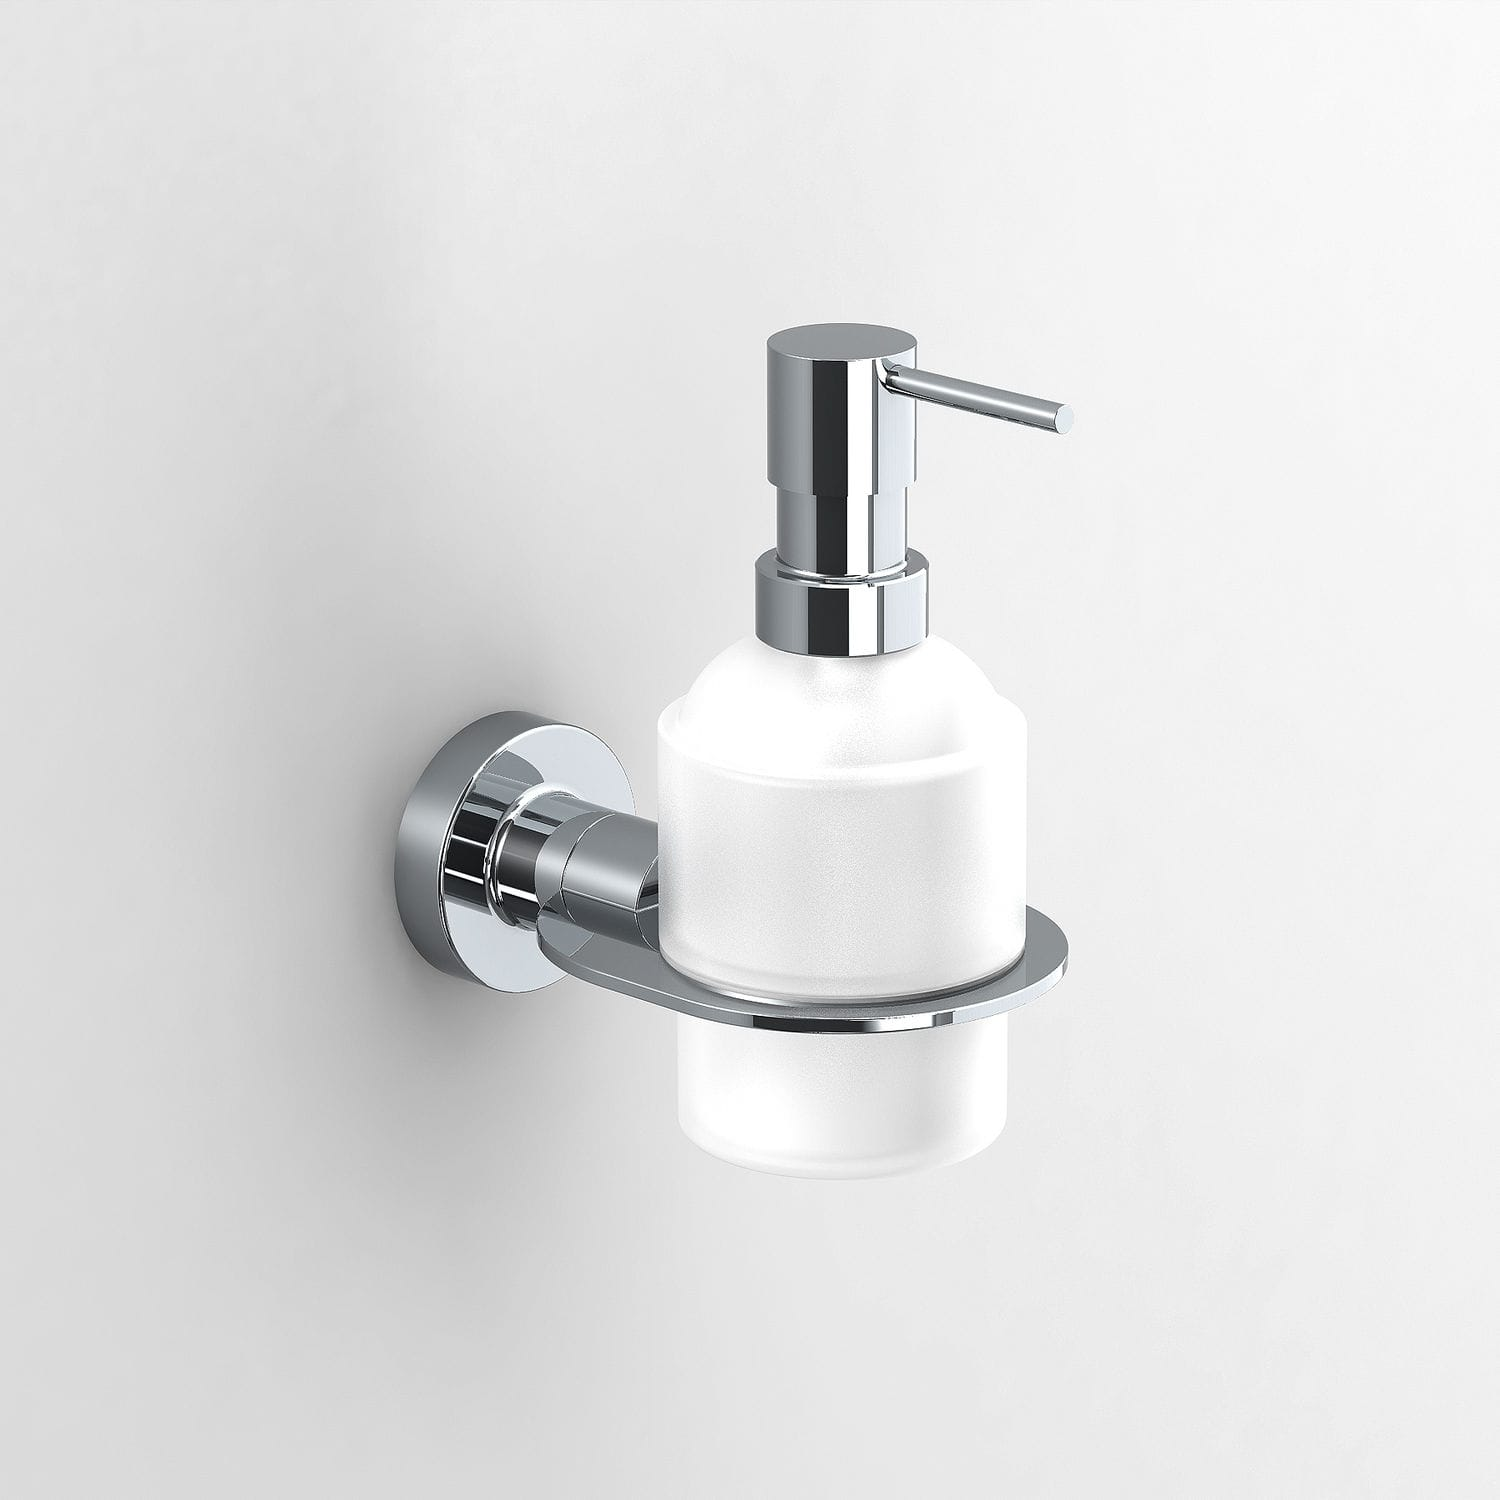 mercial soap dispenser wall mounted metal manual TECNO